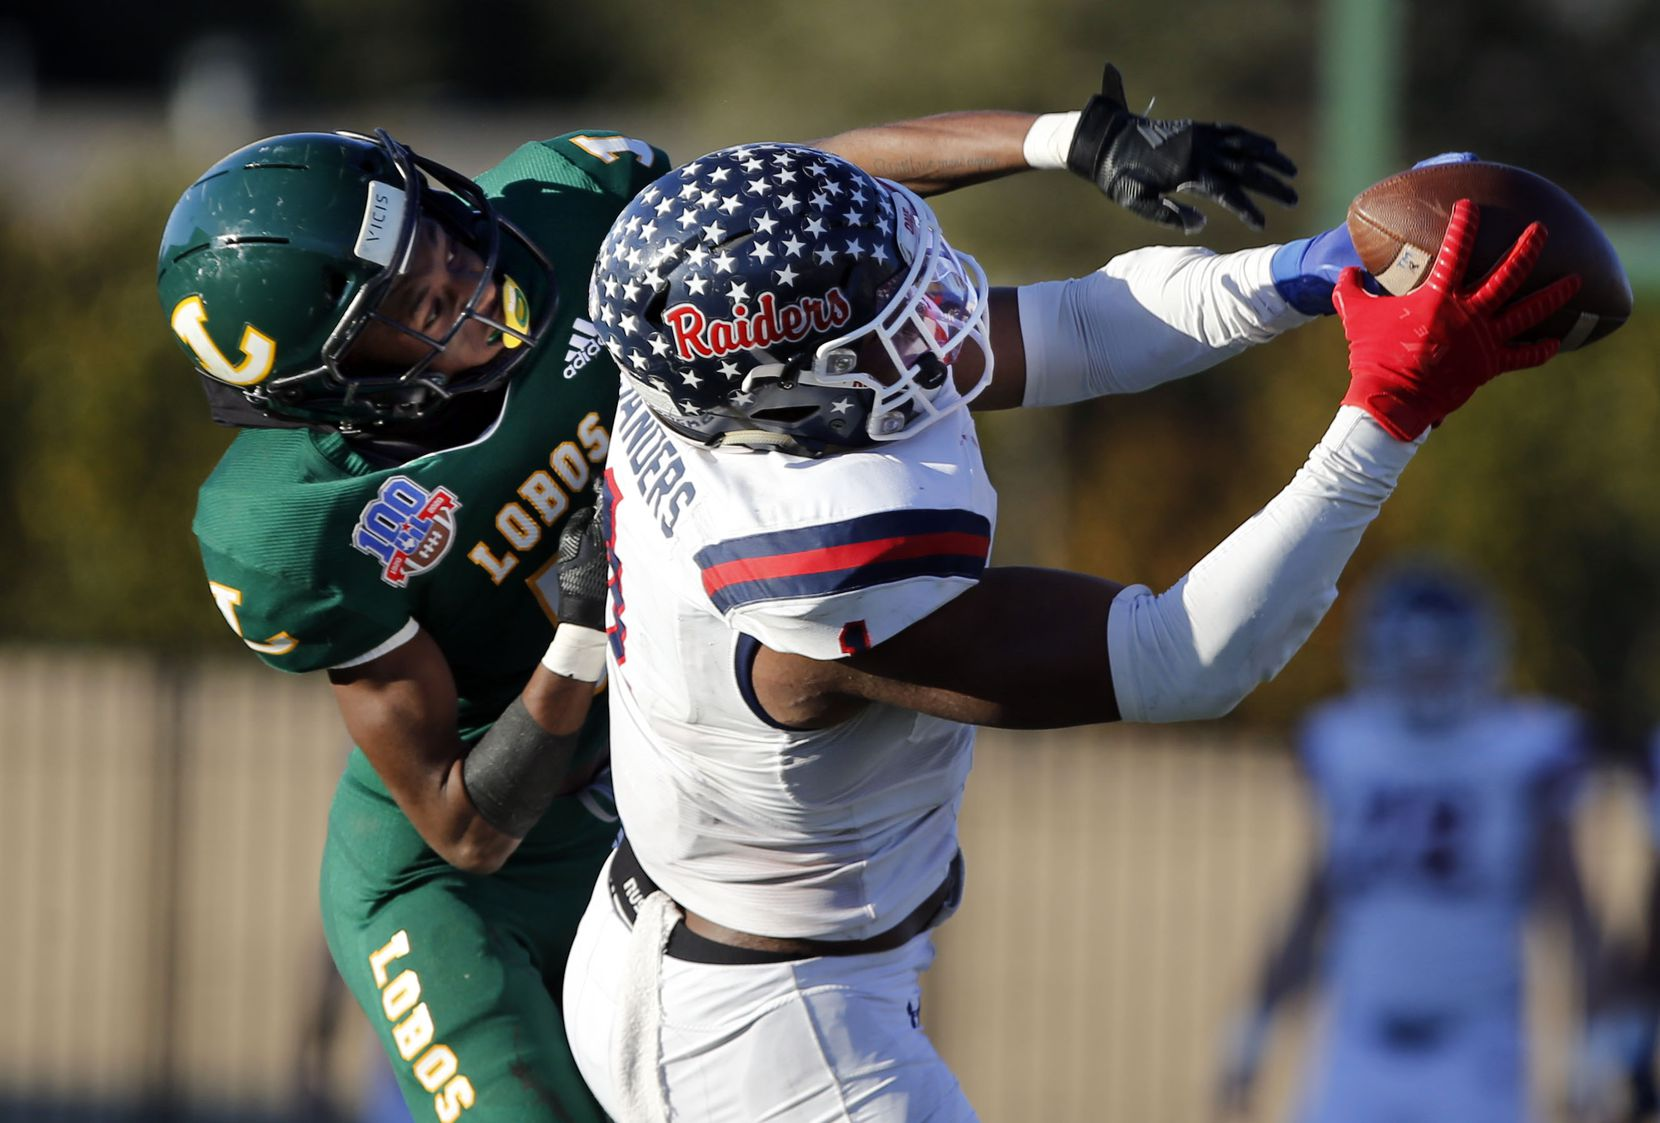 Denton Ryan's Ja'Tavion Sanders (1) catches a pass for a first down over Longview defender Dylan Davis (5) during the second half of a Class 5A Division I Region I semifinal football playoff game at Mesquite Memorial  Stadium in Mesquite on Saturday, December 26, 2020. (John F. Rhodes / Special Contributor)